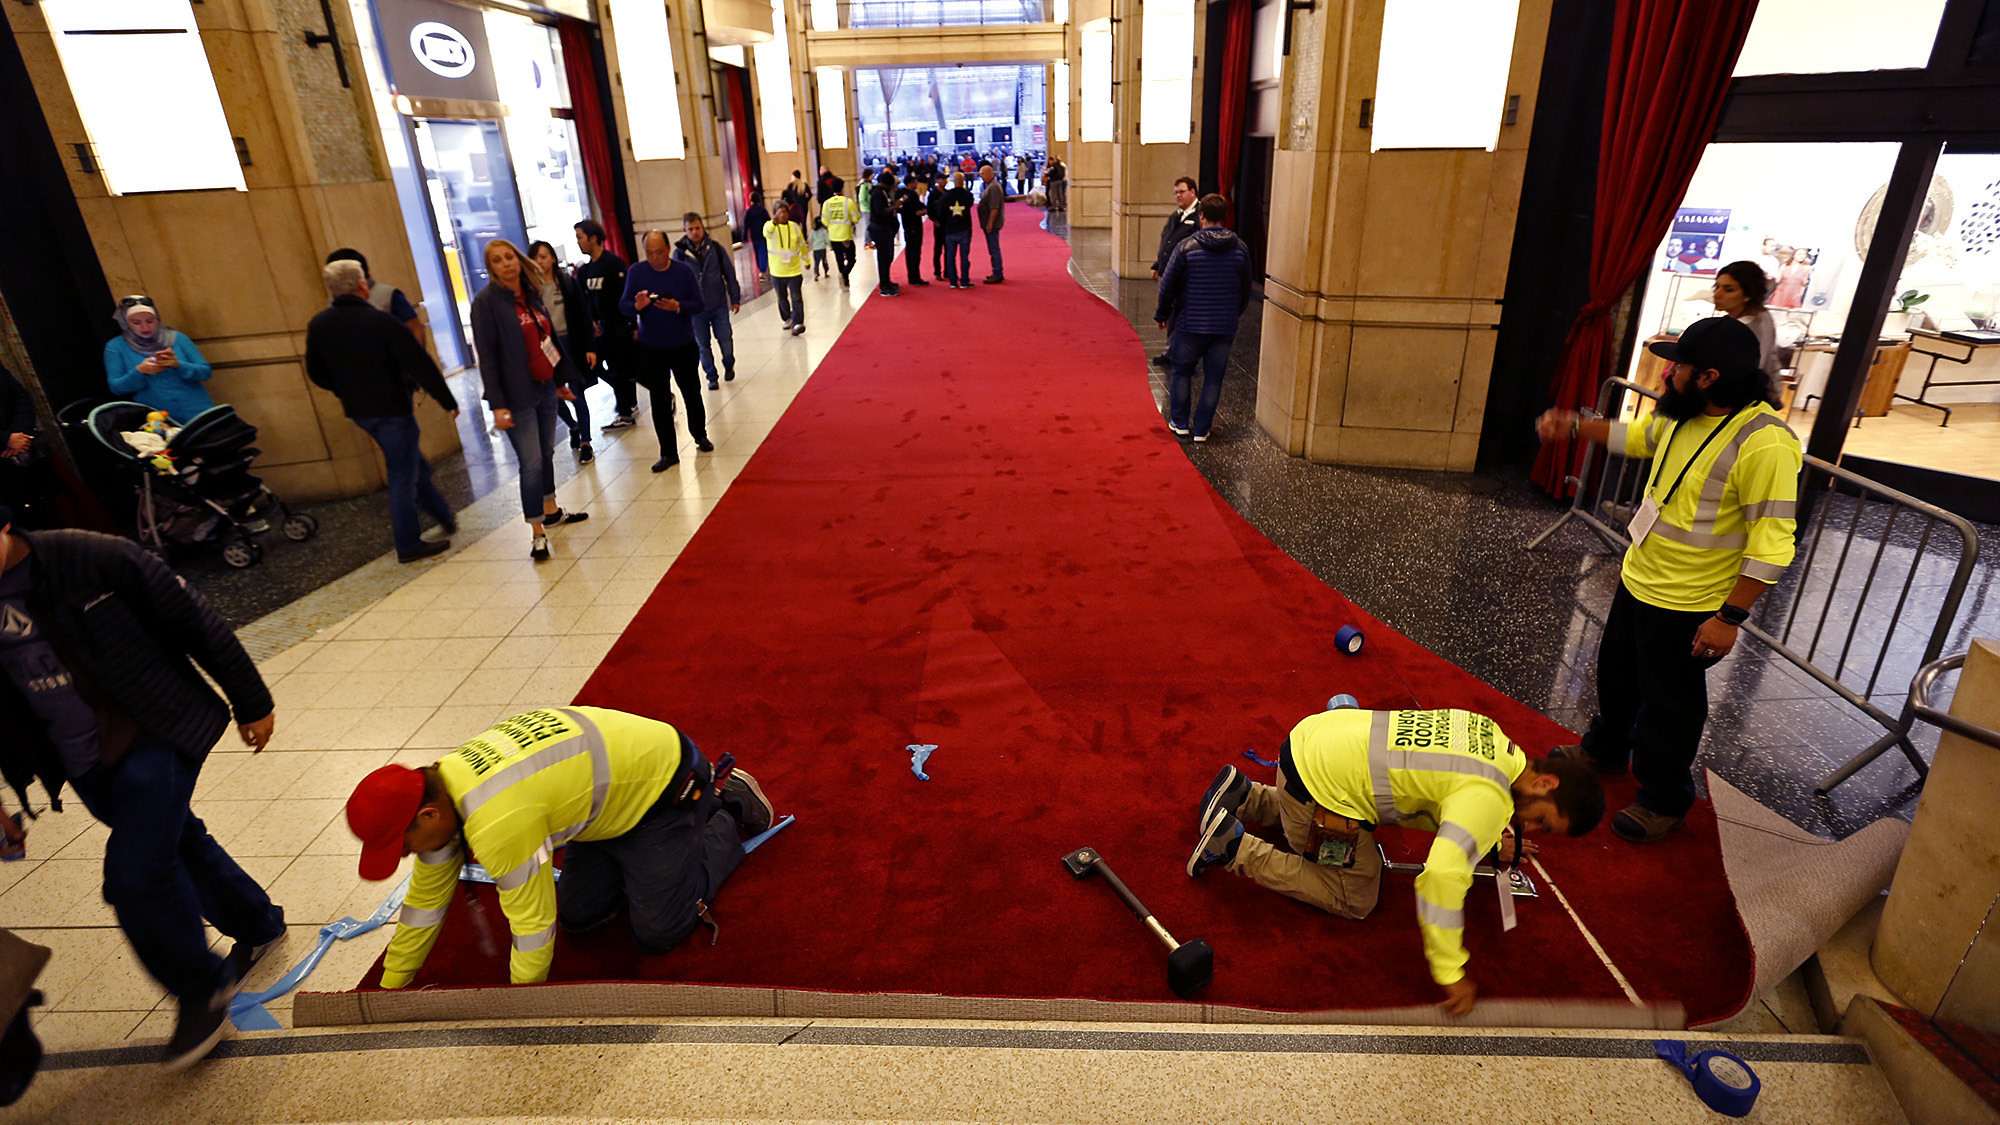 Alvarado Contreras, from left, Rene Palma and Edgar Ochoa cut into place a roll of red carpet in the Dolby Theatre's forecourt.